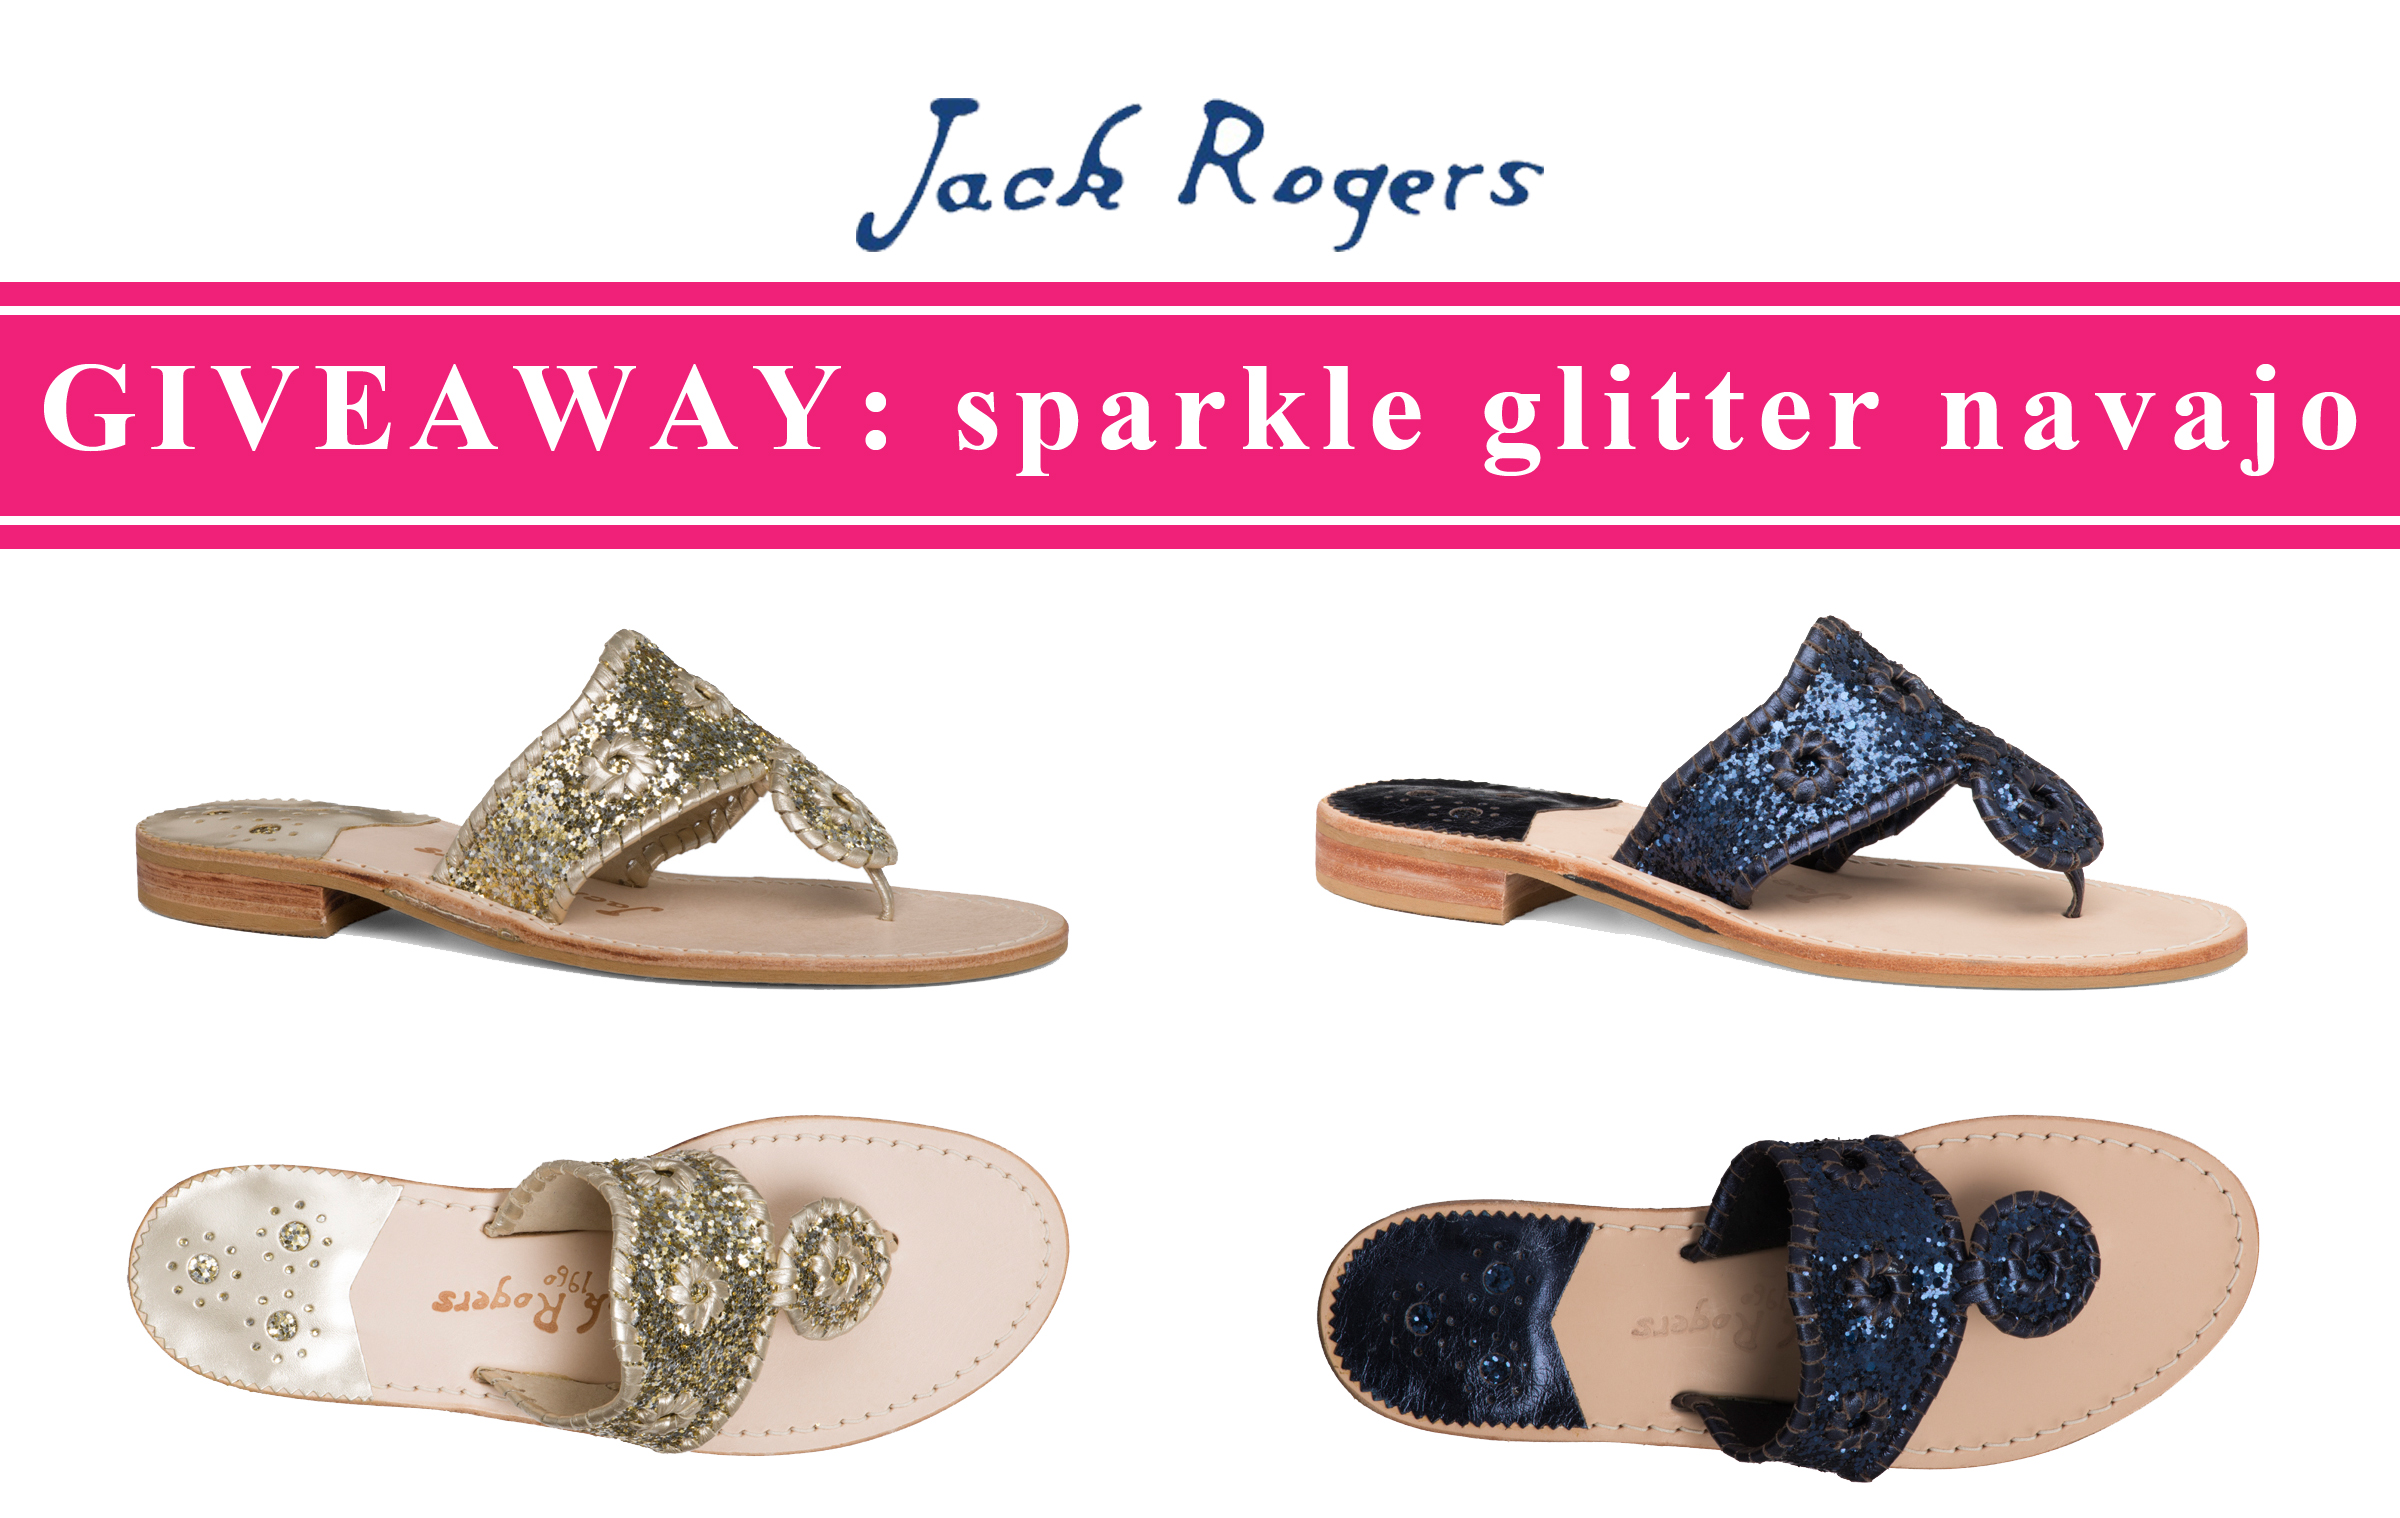 ccc21d2f40b4bf GIVEAWAY  Jack Rogers Sparkle Glitter Navajo Sandals - Kelly in the City